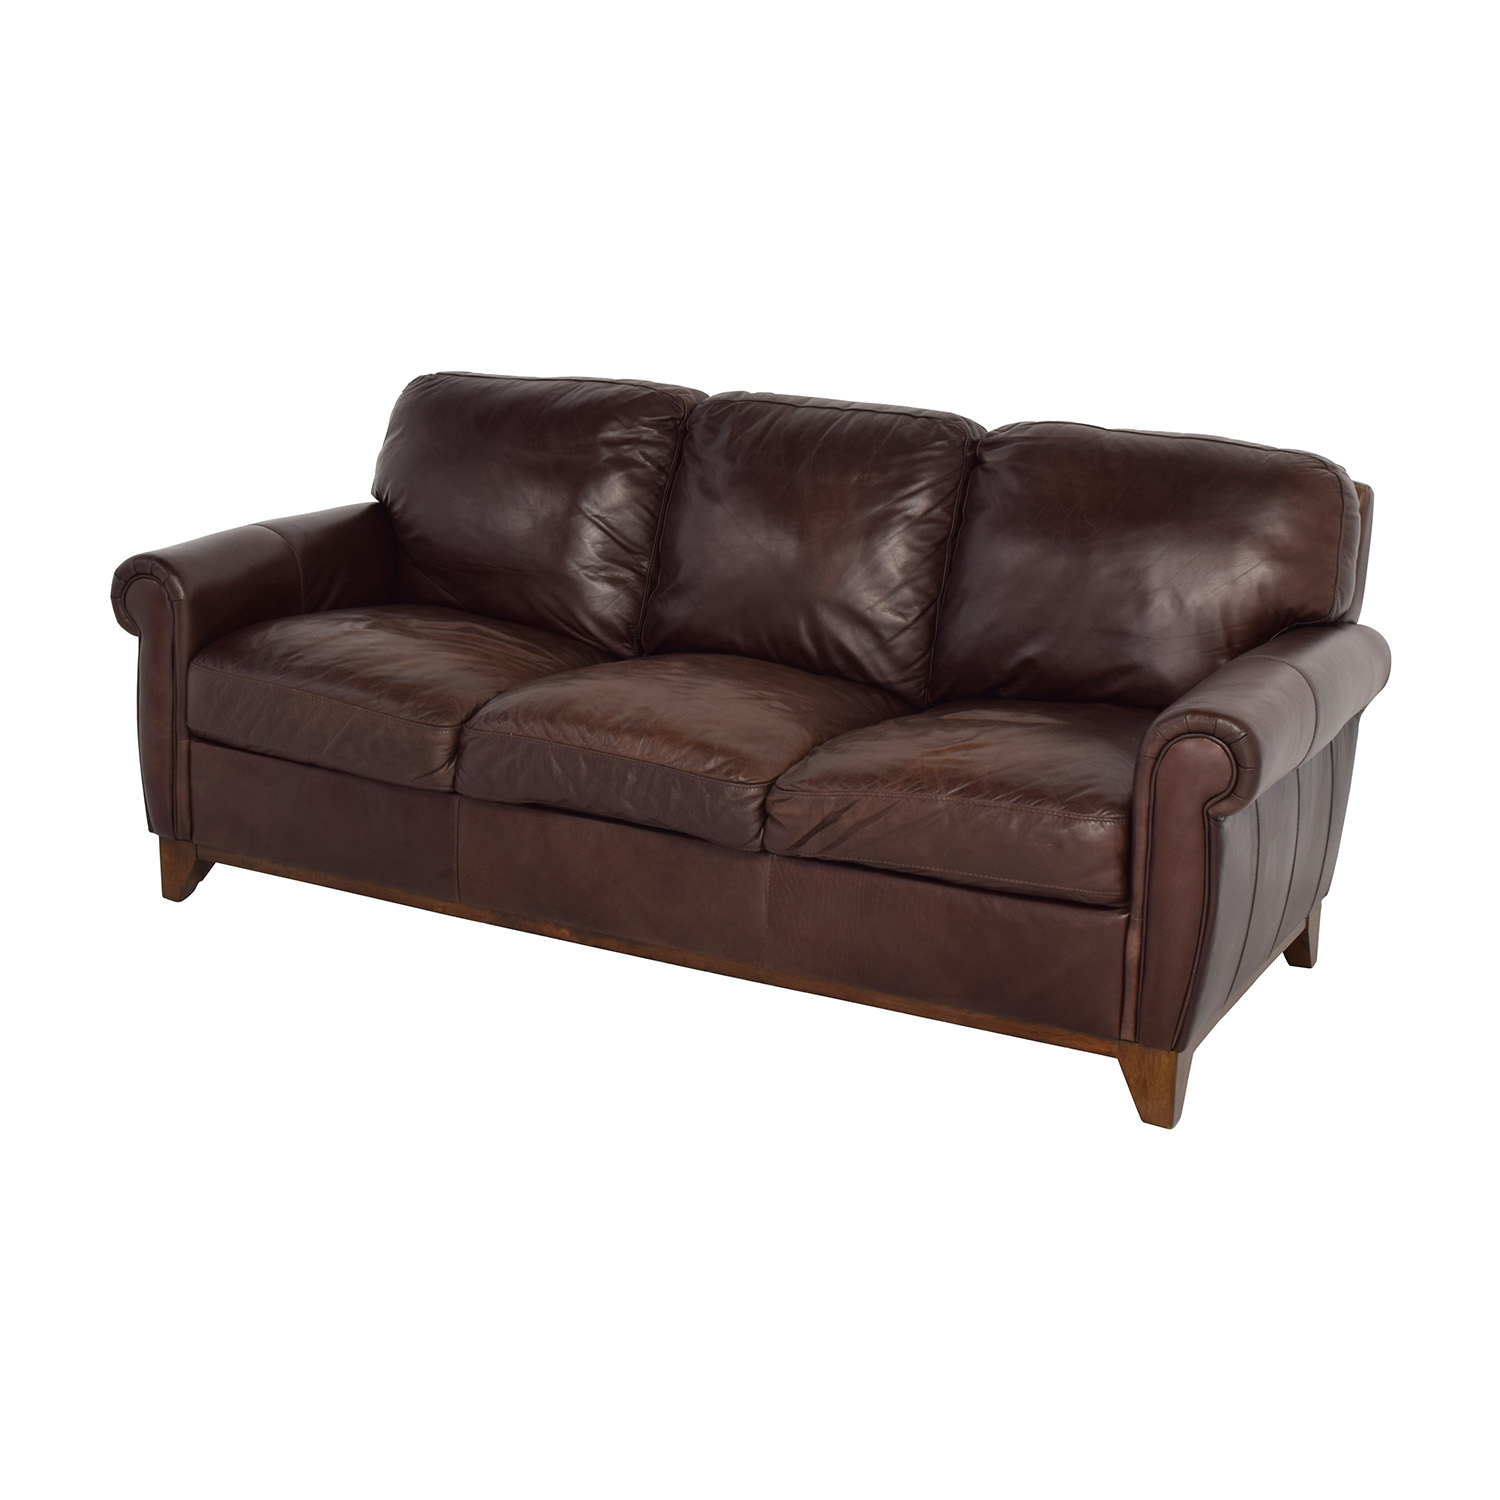 Swell 48 Off Raymour Flanigan Raymour Flanigan Brown Leather Couch Sofas Ibusinesslaw Wood Chair Design Ideas Ibusinesslaworg